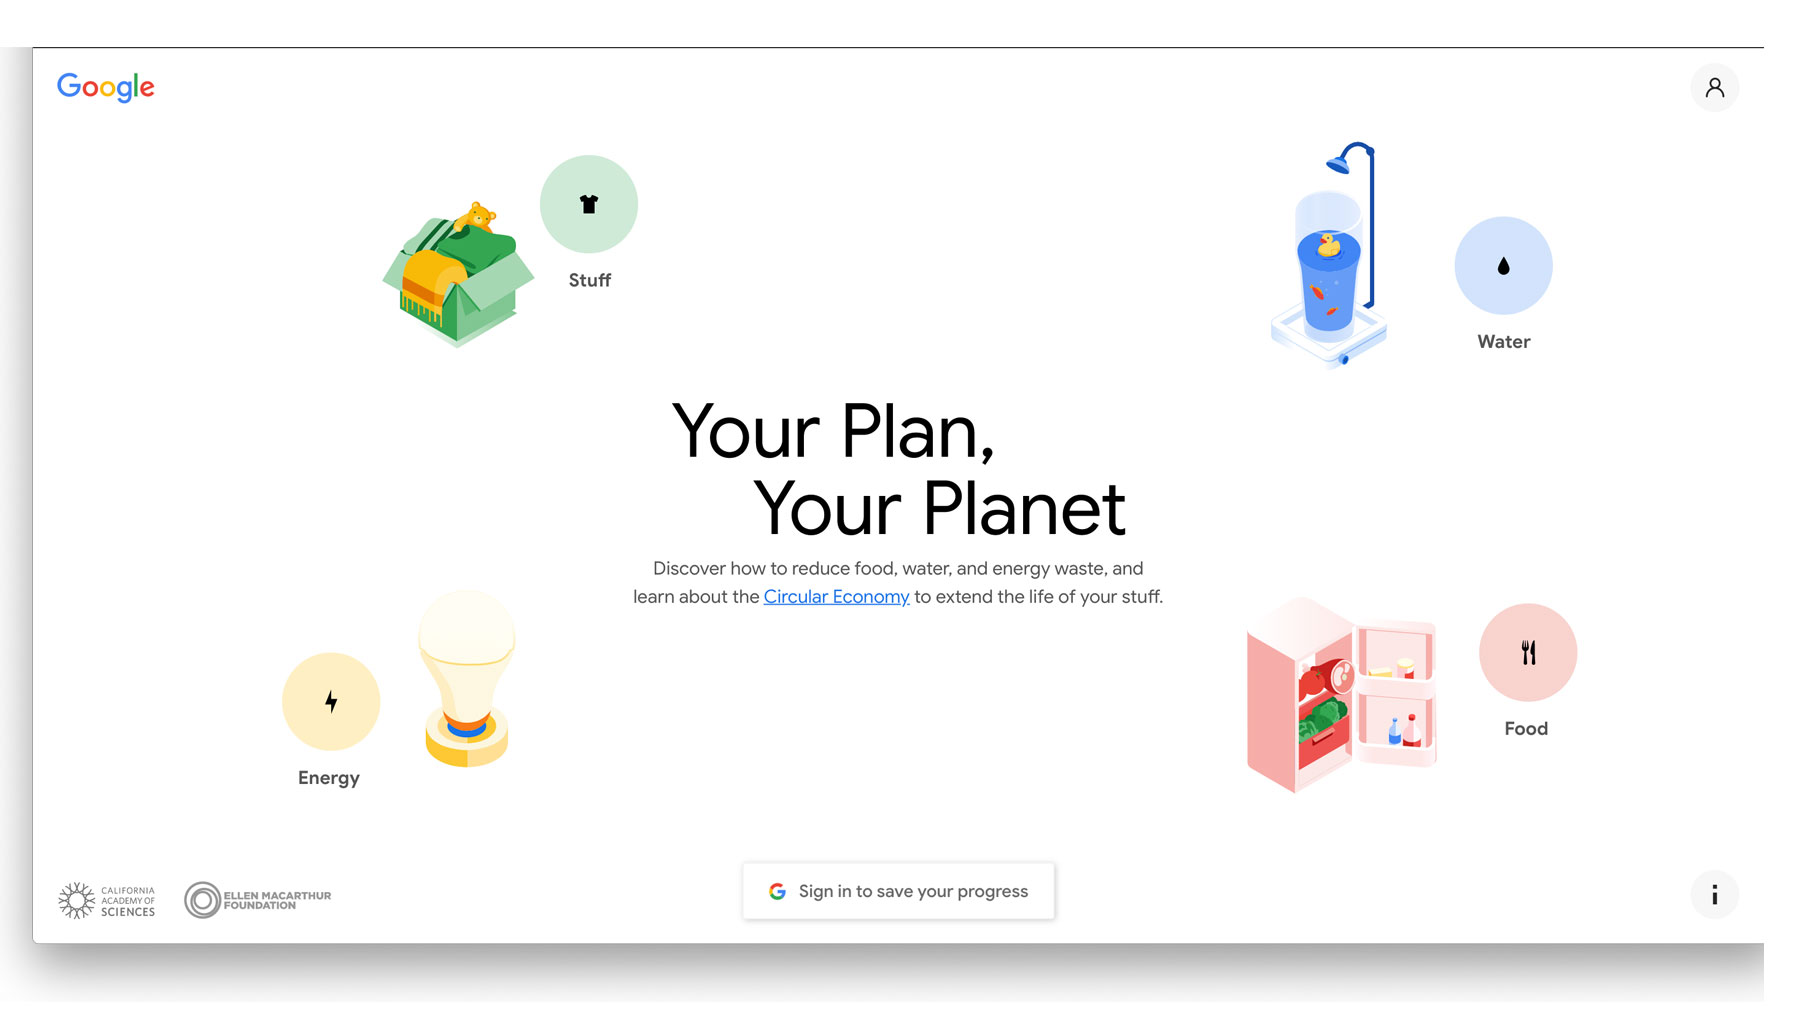 Your Plan, Your Planet by Google